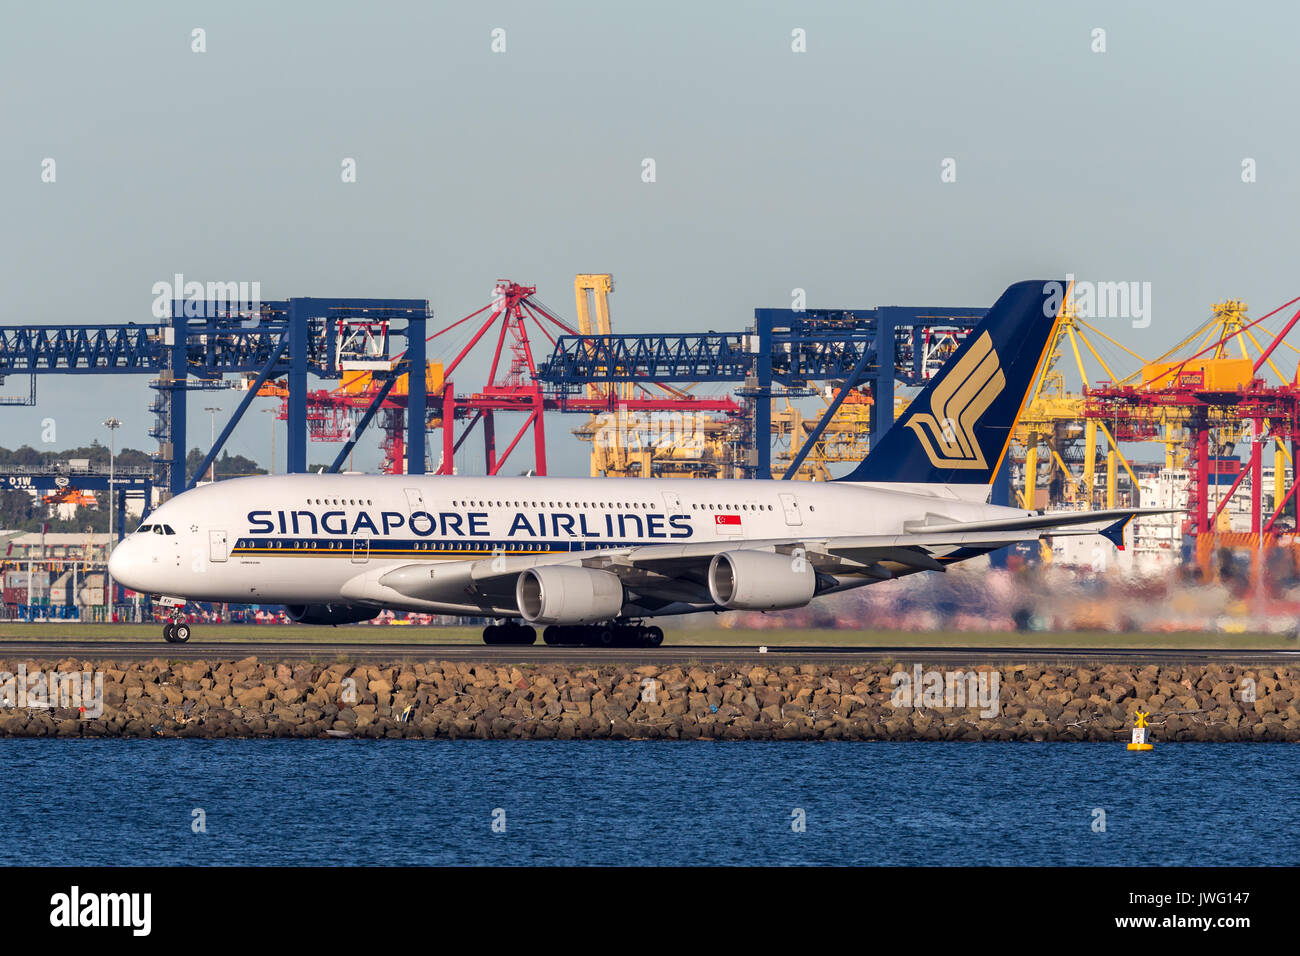 Singapore Airlines Airbus A380 aircraft at Sydney Airport. Stock Photo